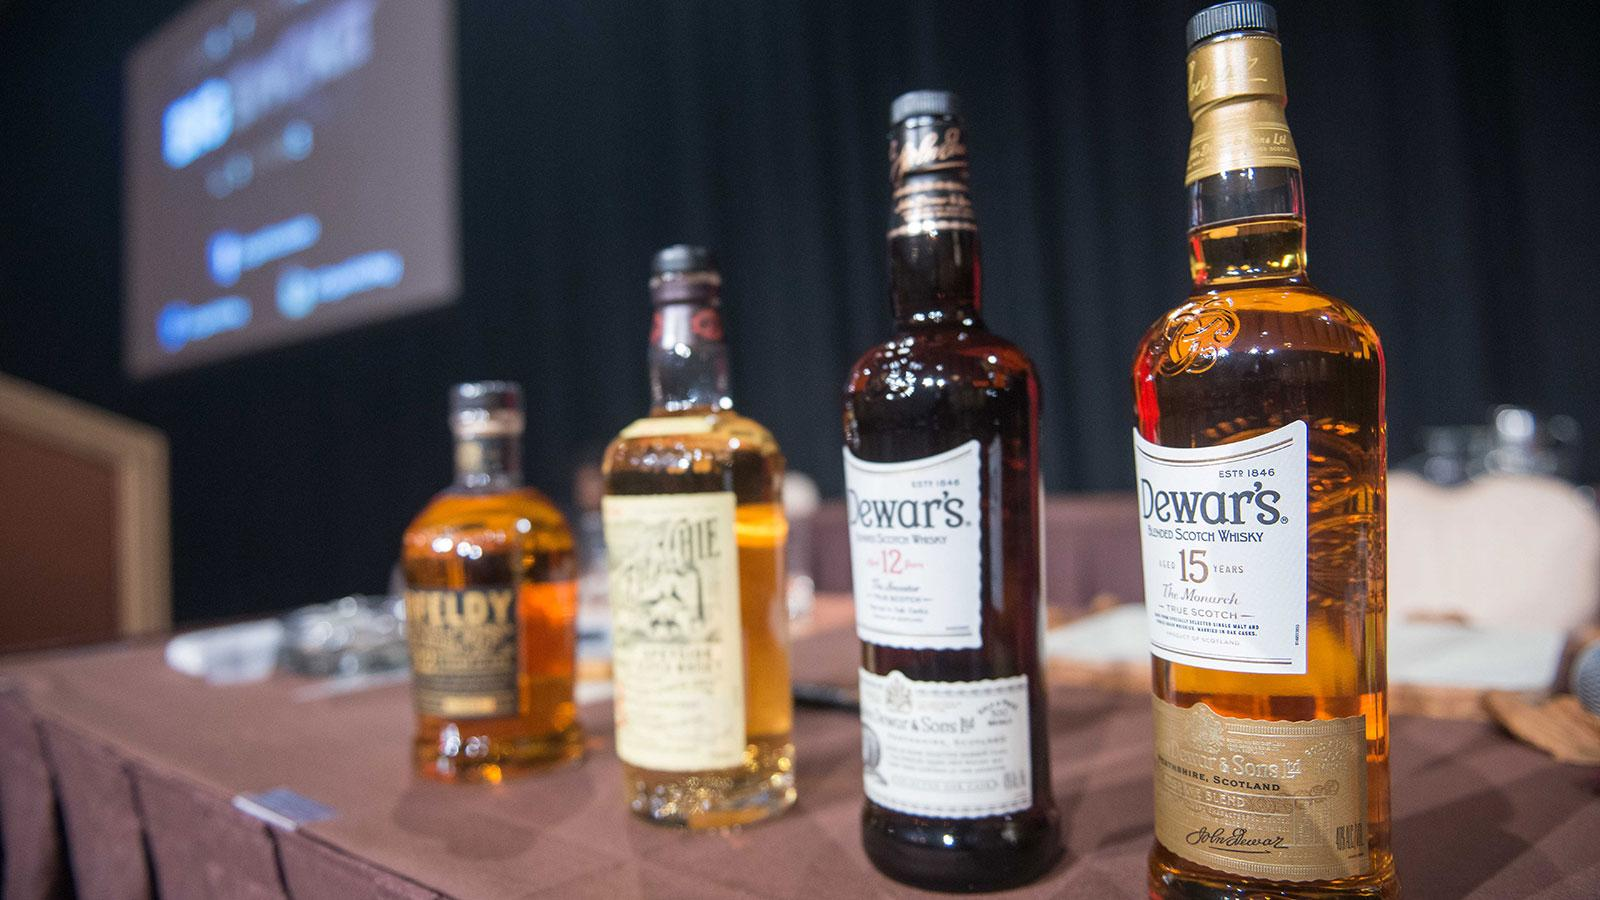 The seminar included a tasting of two single-malt Scotches, Aberfeldy 12 and Craigellachie 13, as well as two blends, Dewar's 12 and Dewar's 15.